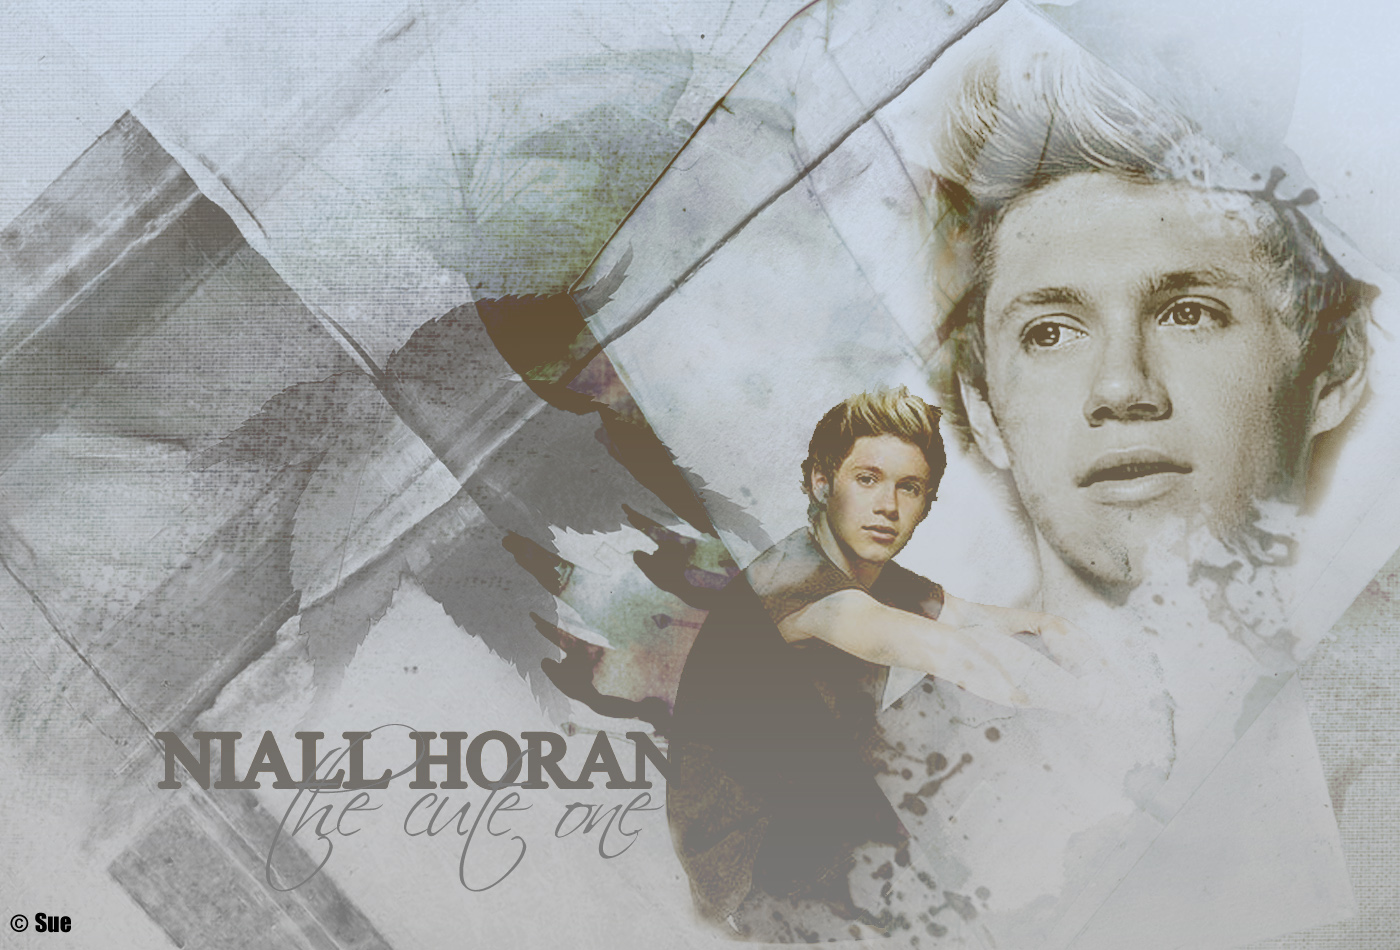 Another Niall Horan by dark-angelsoul